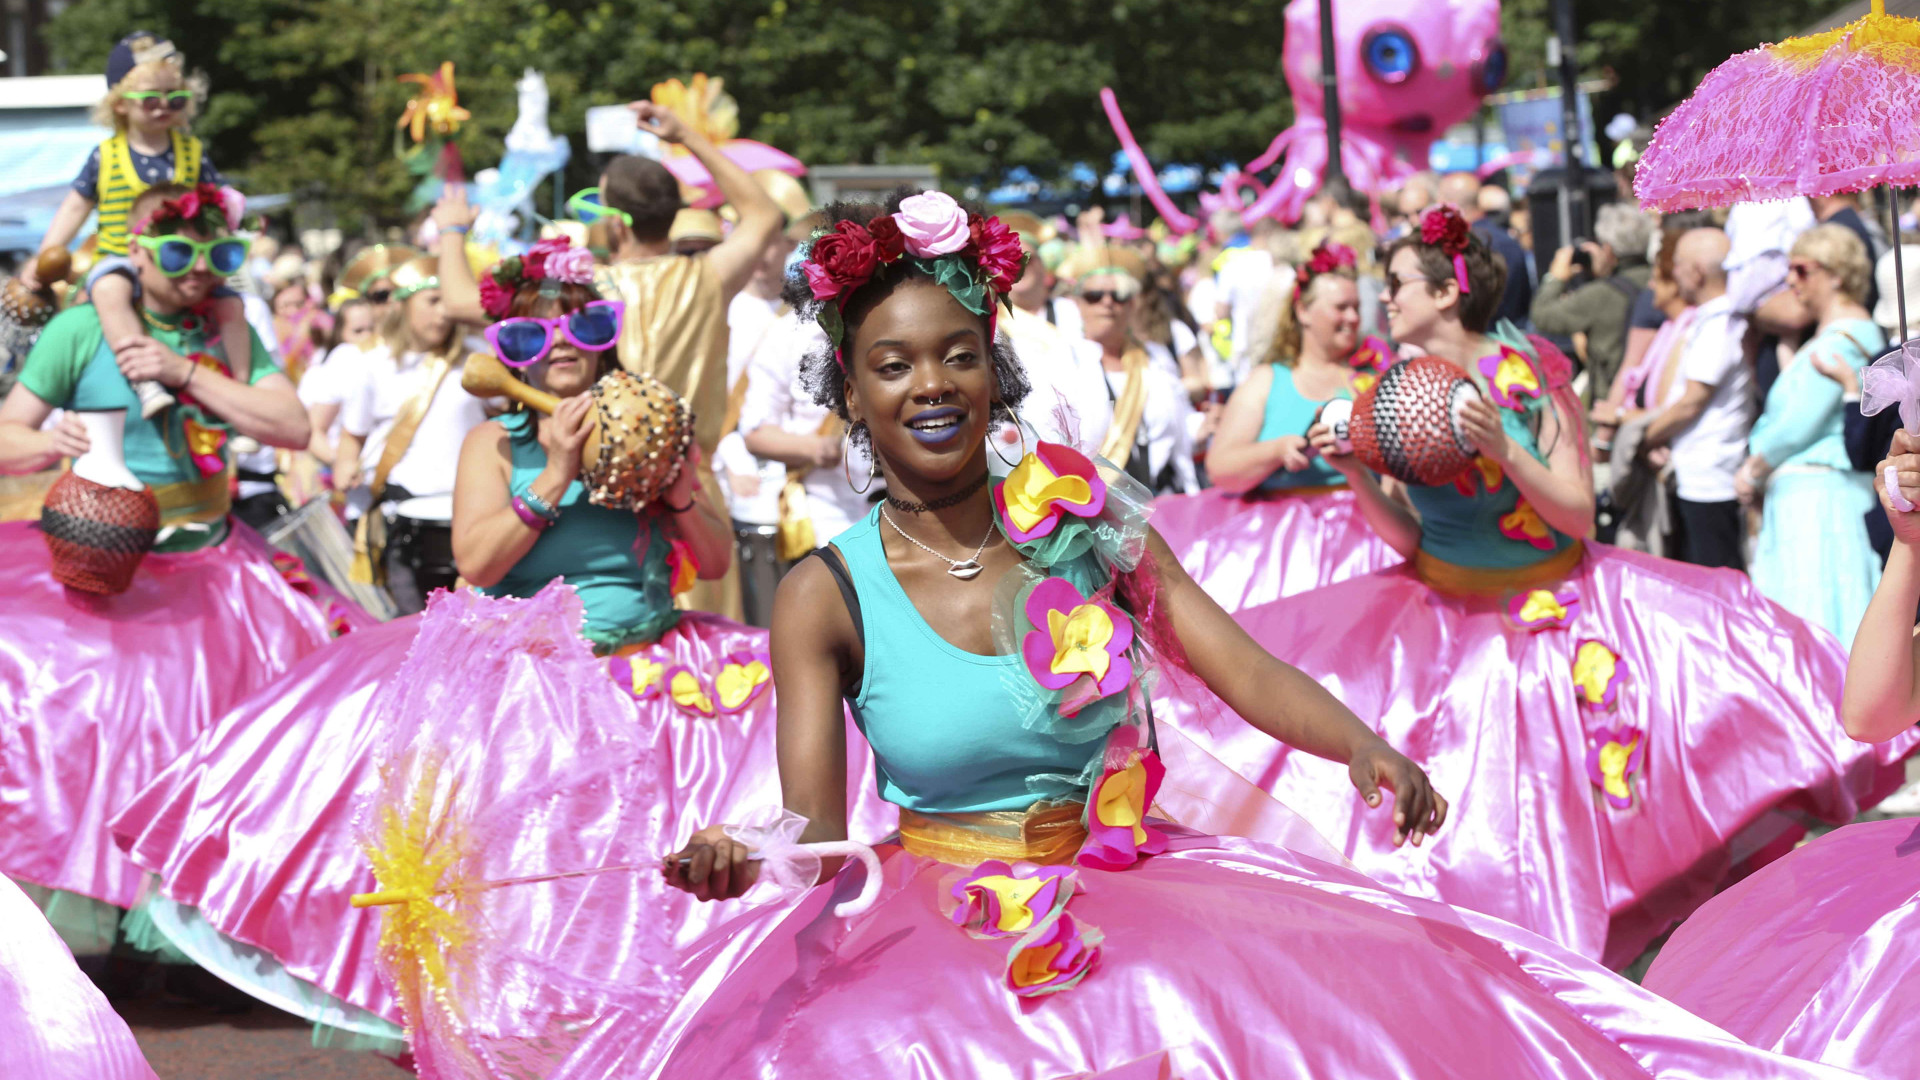 A colourful procession at Mouth of the Tyne festival